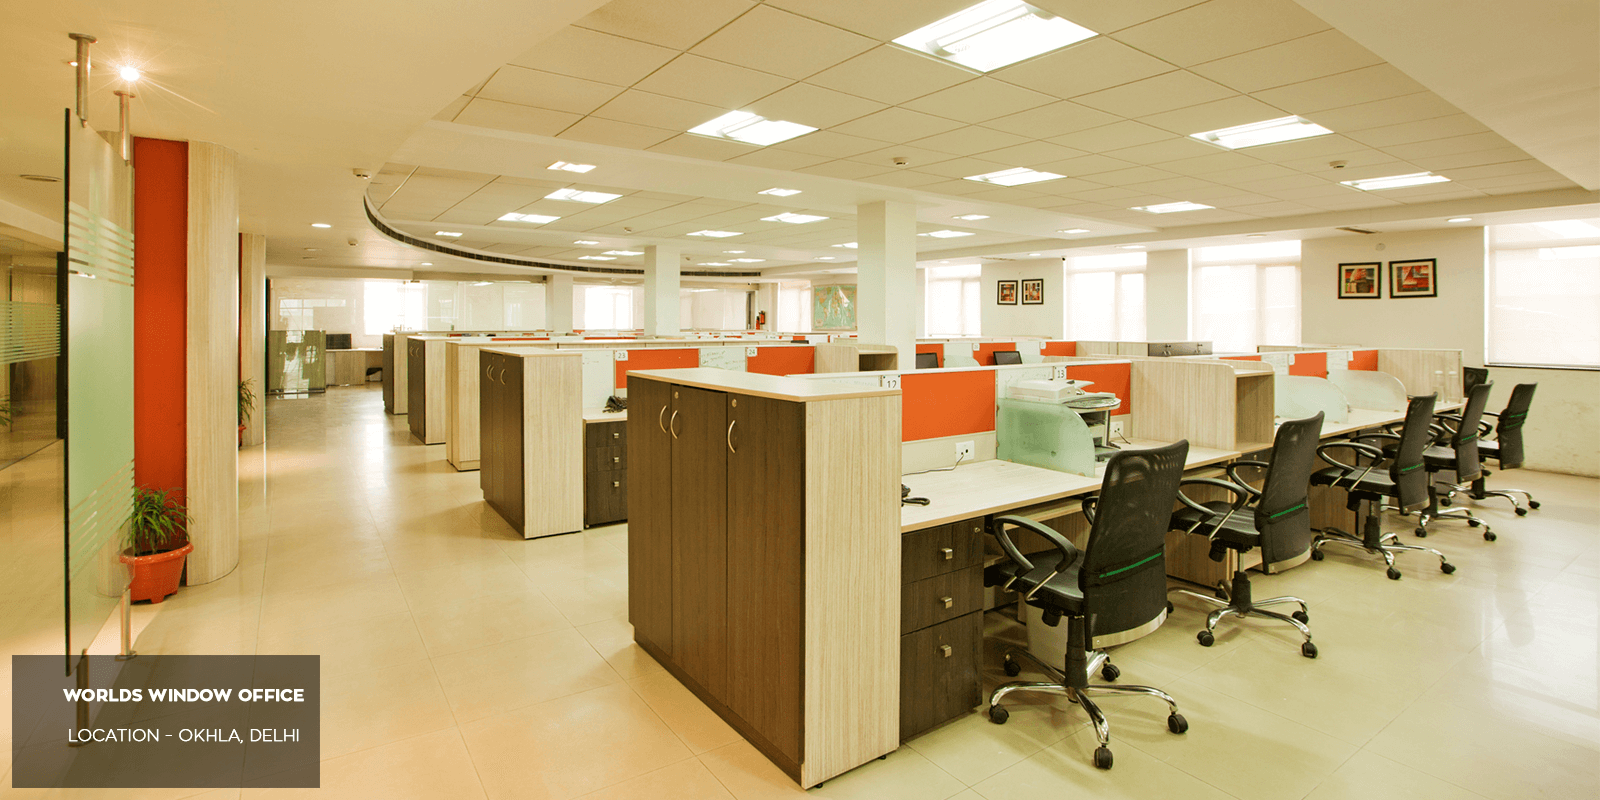 world-windows1-the-novarch-architects-best-architects-in-cr-park-south-delhi-110019